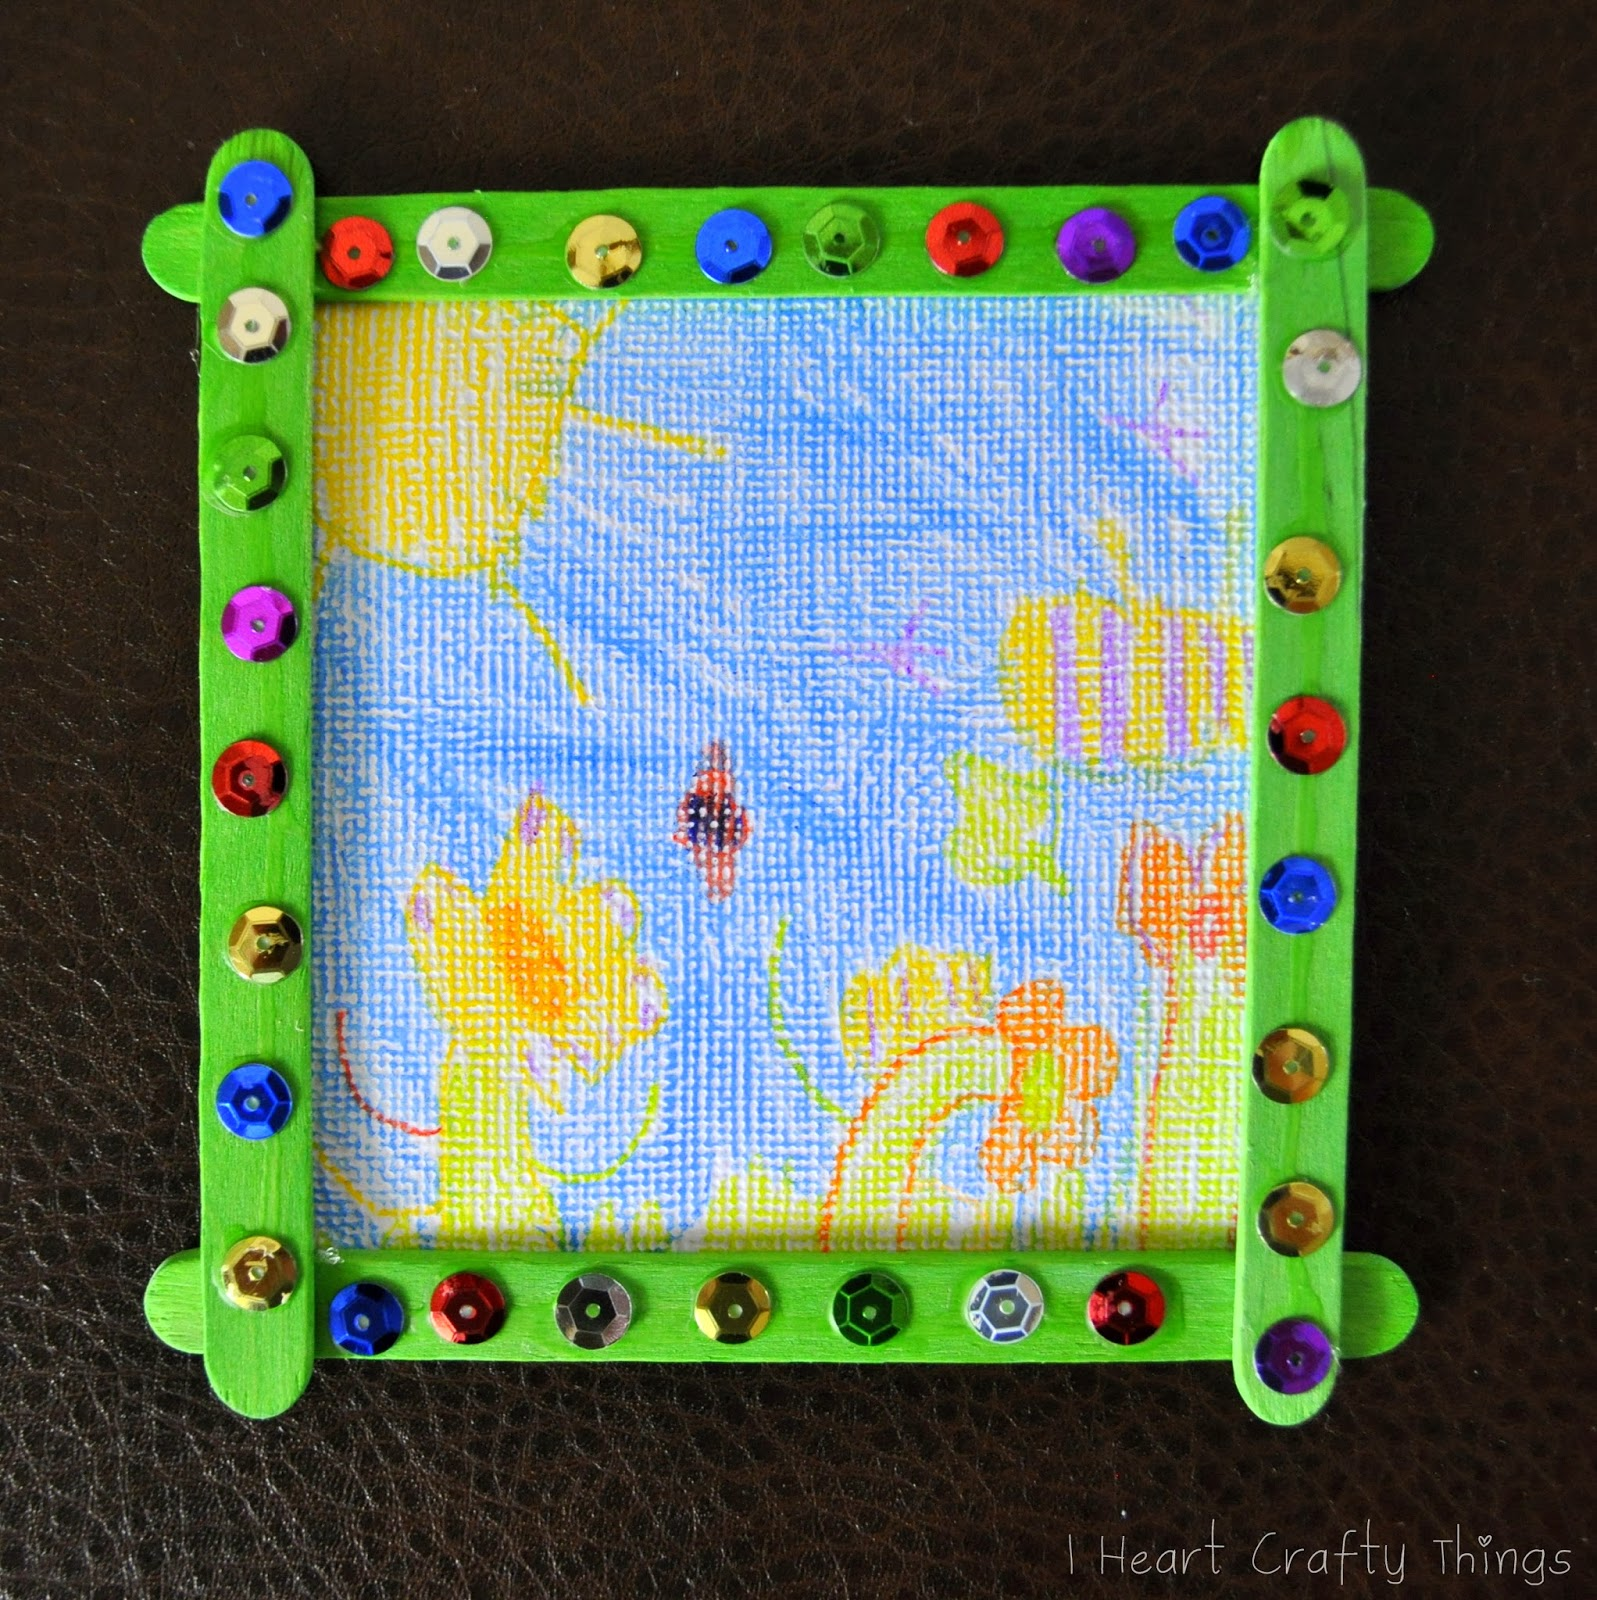 Homemade Grandparent Christmas Gift from Kids | I Heart Crafty Things